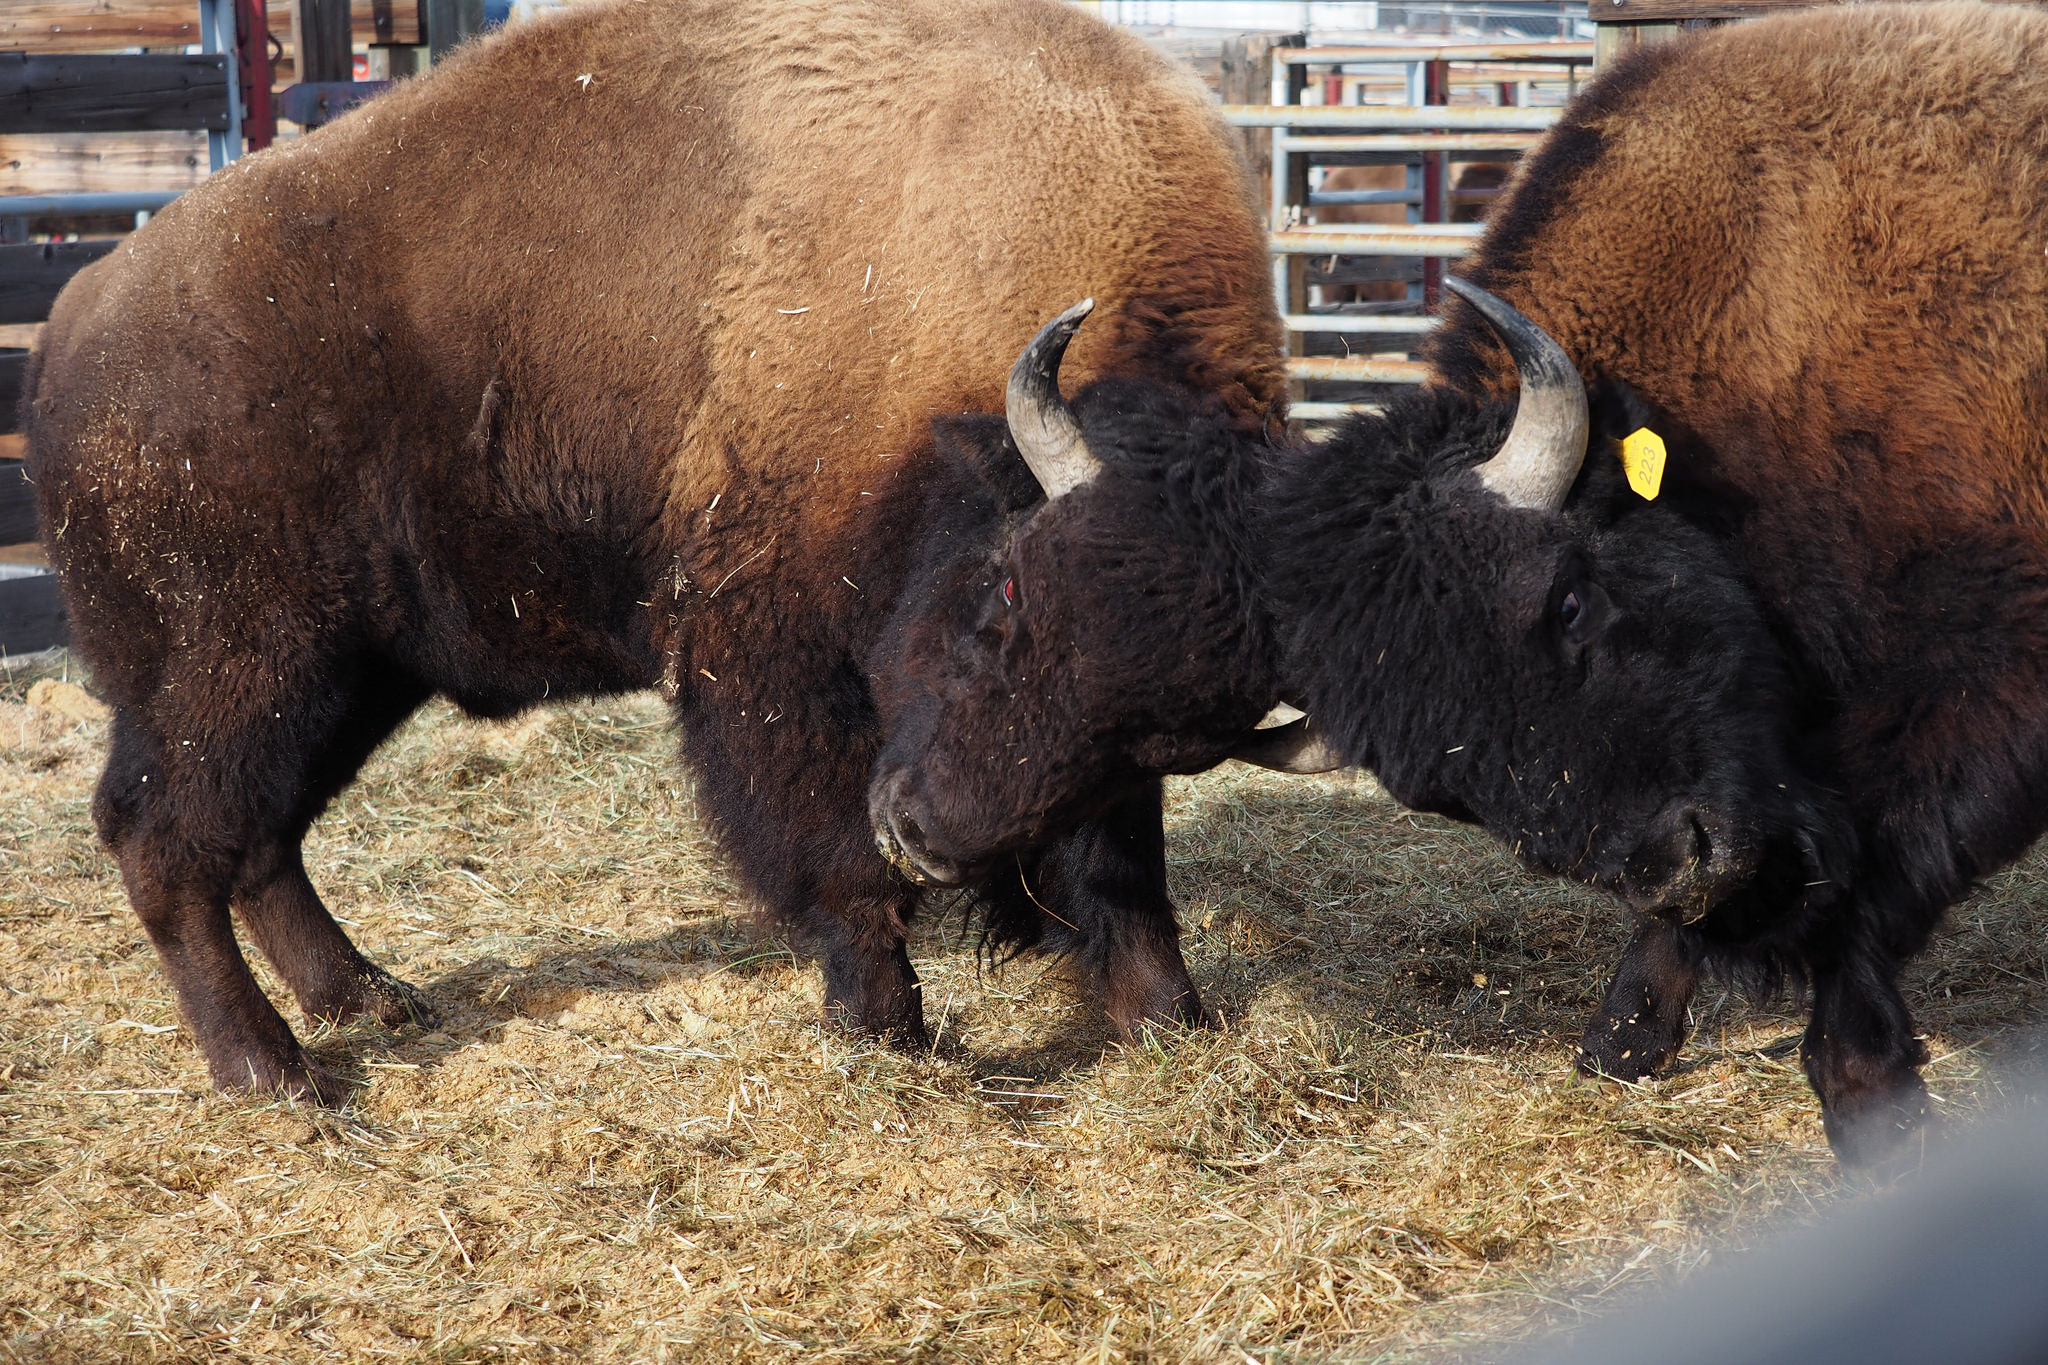 2-bison-butting-heads-and-fighting